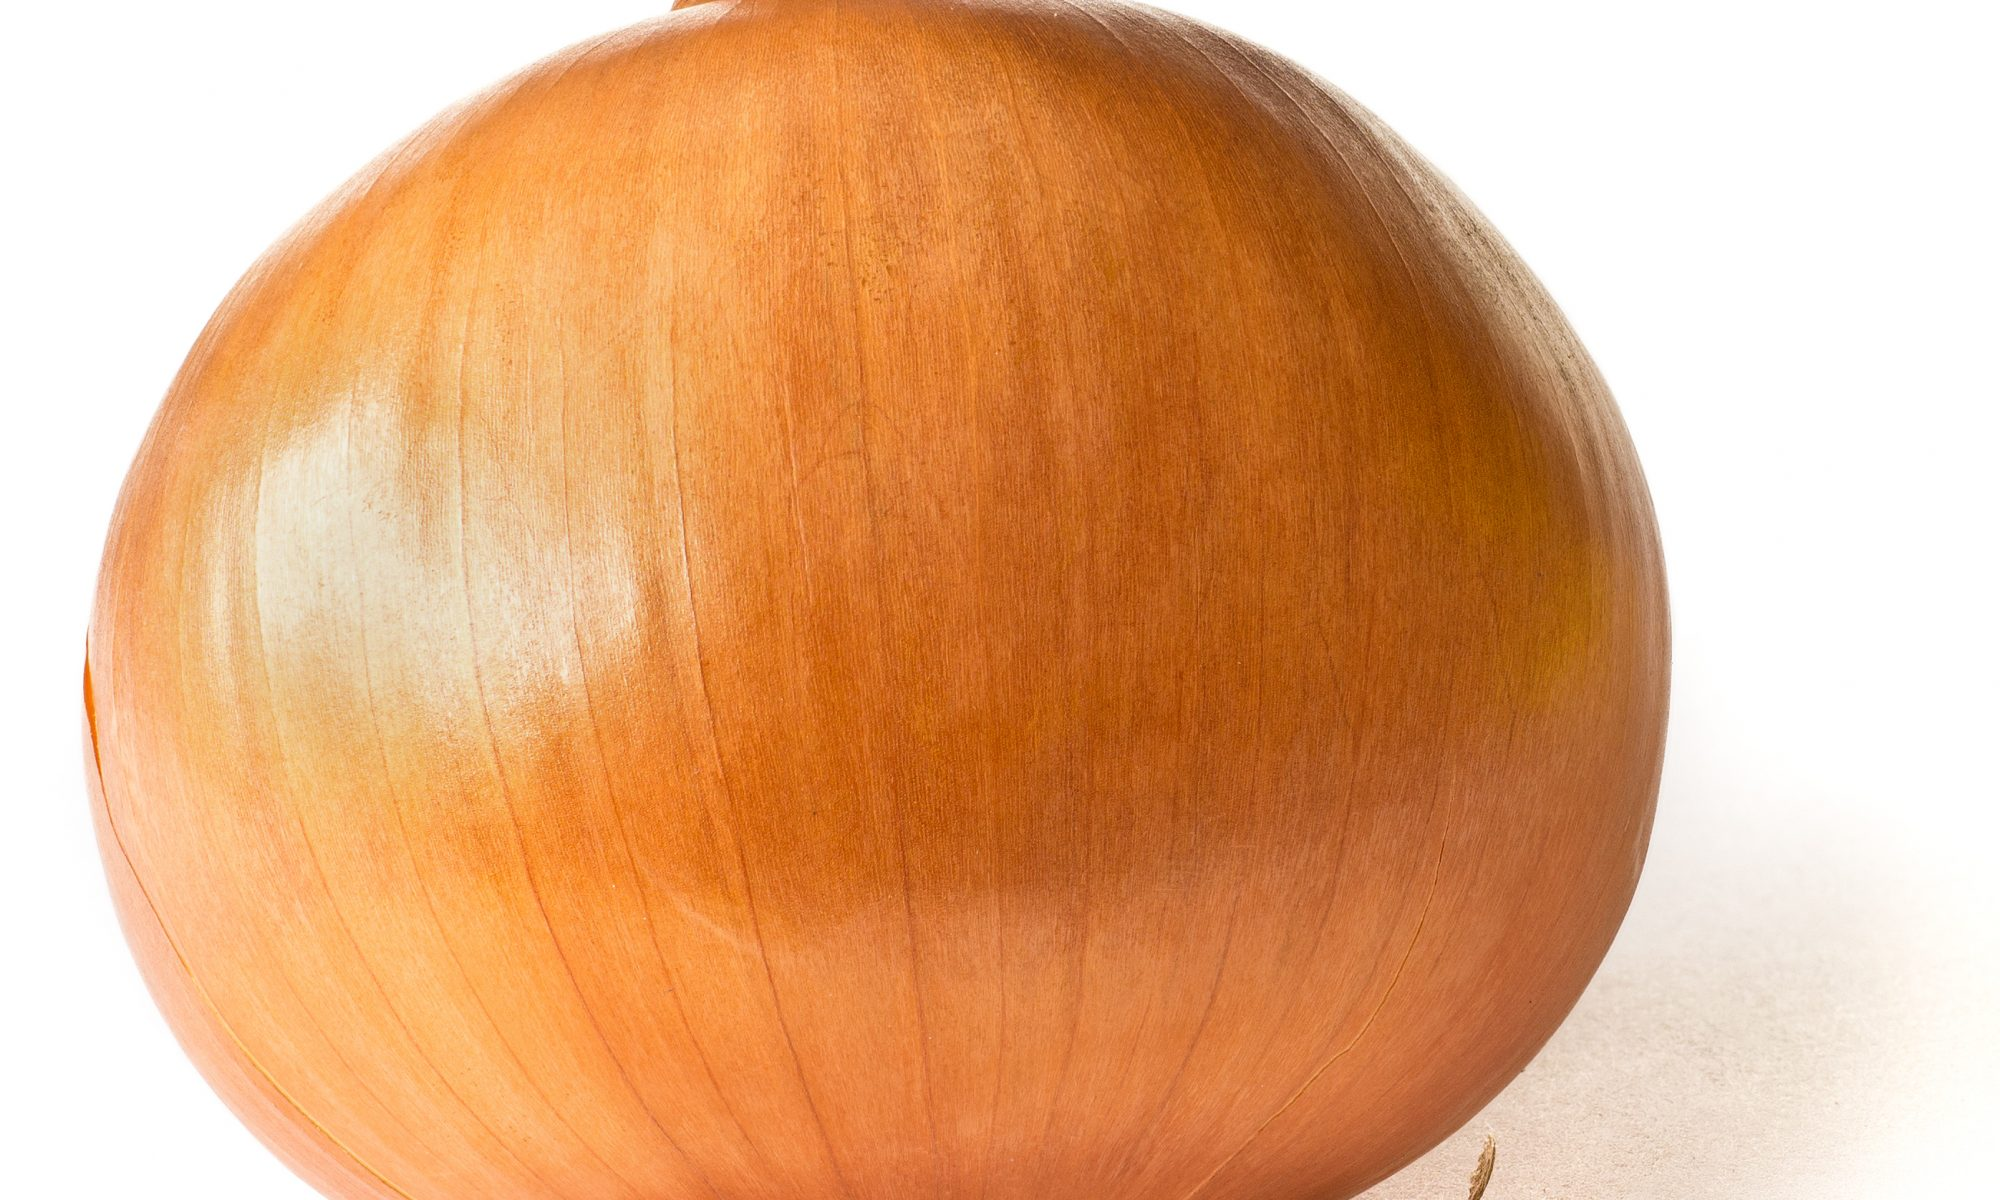 It starts with an onion